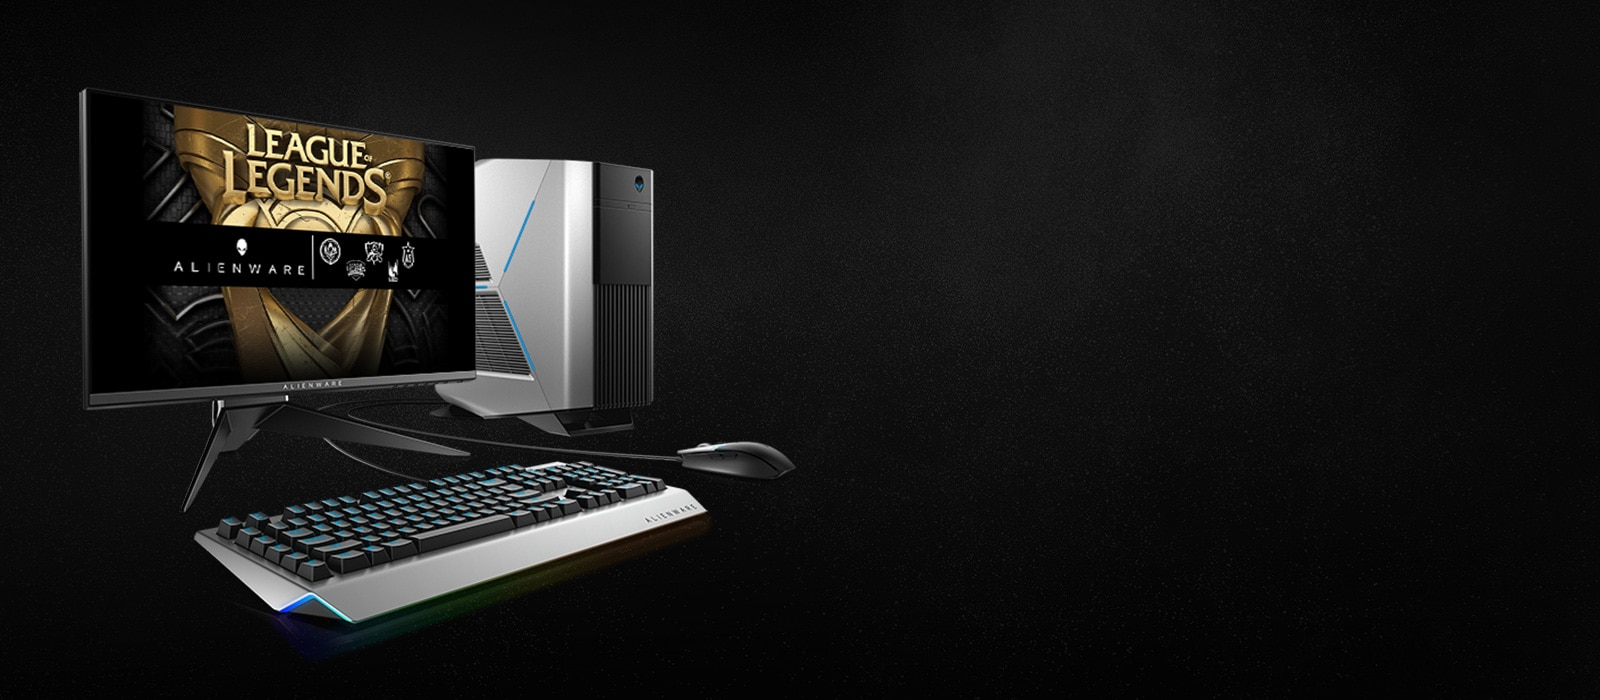 Alienware Homepage